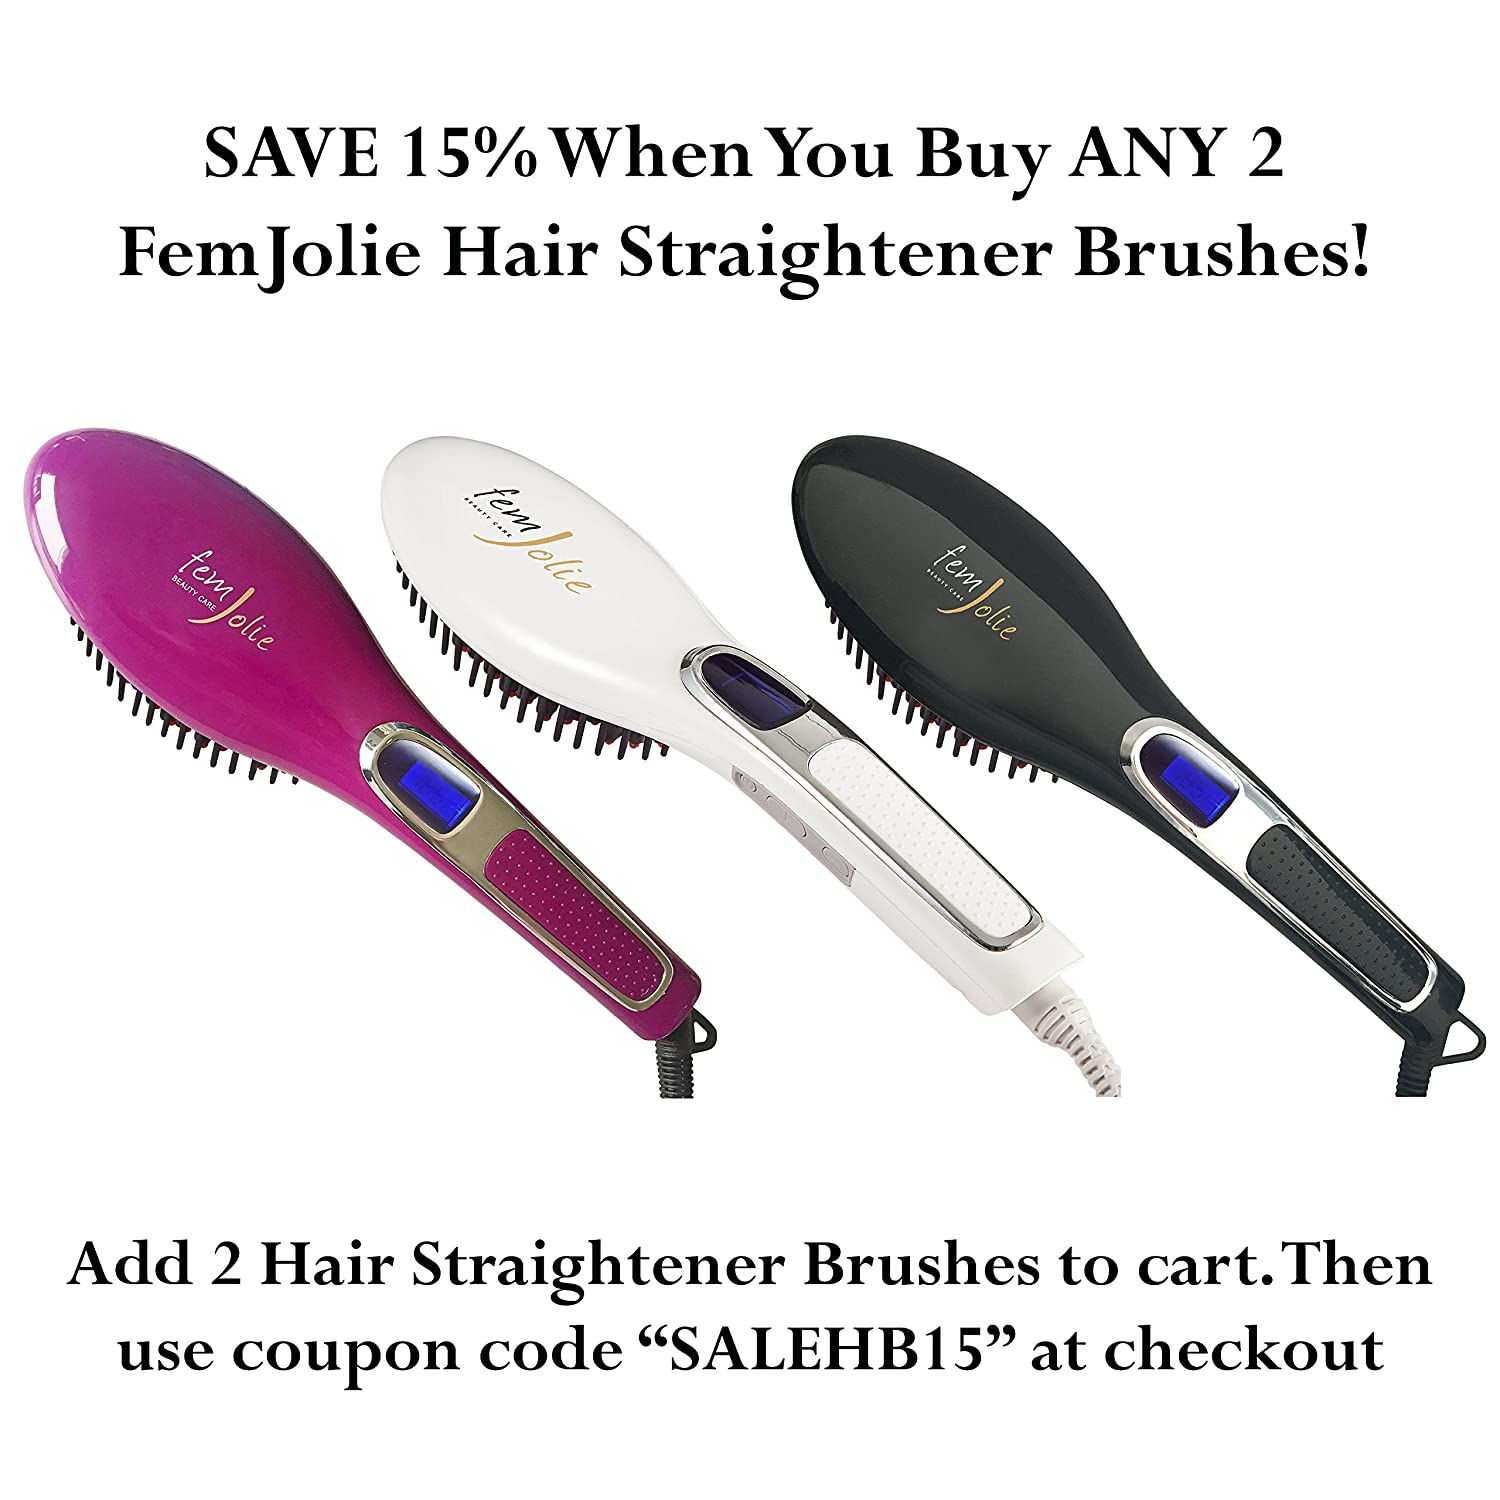 Amazon.com : FemJolie Hair Straightening Brush Best for Beauty Styling (with Glove & Vanity Pouch) 3 in 1 Professional 40W Digital Electric Straightening ...